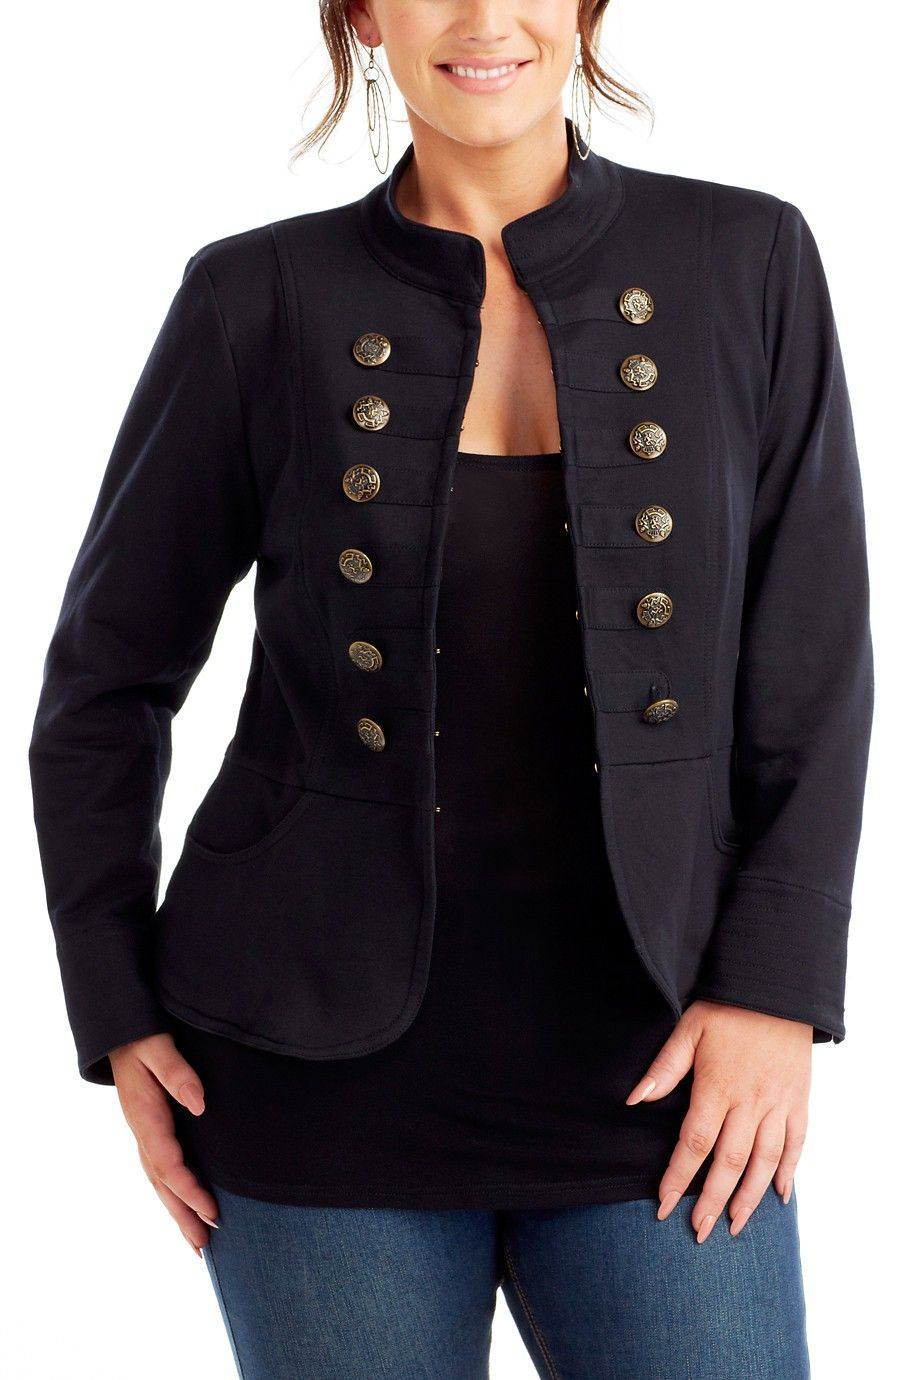 c3cfa8a2638 Jackets - Jackets - Plus Size   Larger Sizes Womens Clothing at Dream Diva